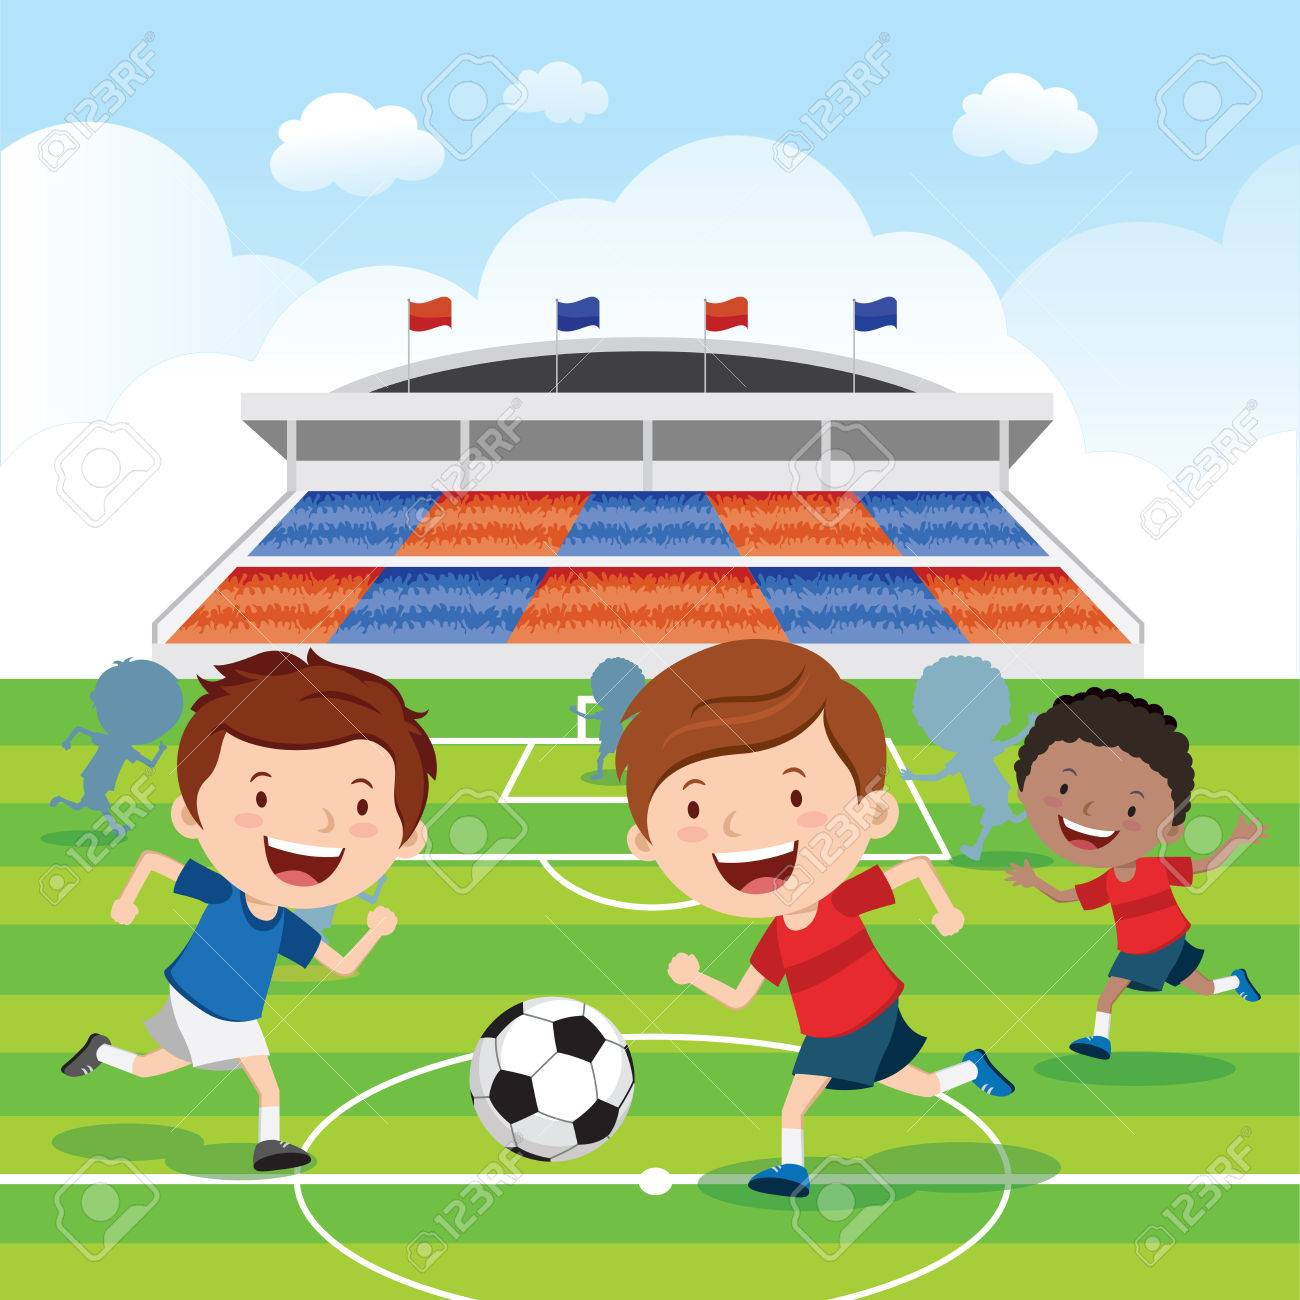 Soccer Match Soccer Players Having Soccer Match In Royalty Free Cliparts Vectors And Stock Illustration Image 63417189